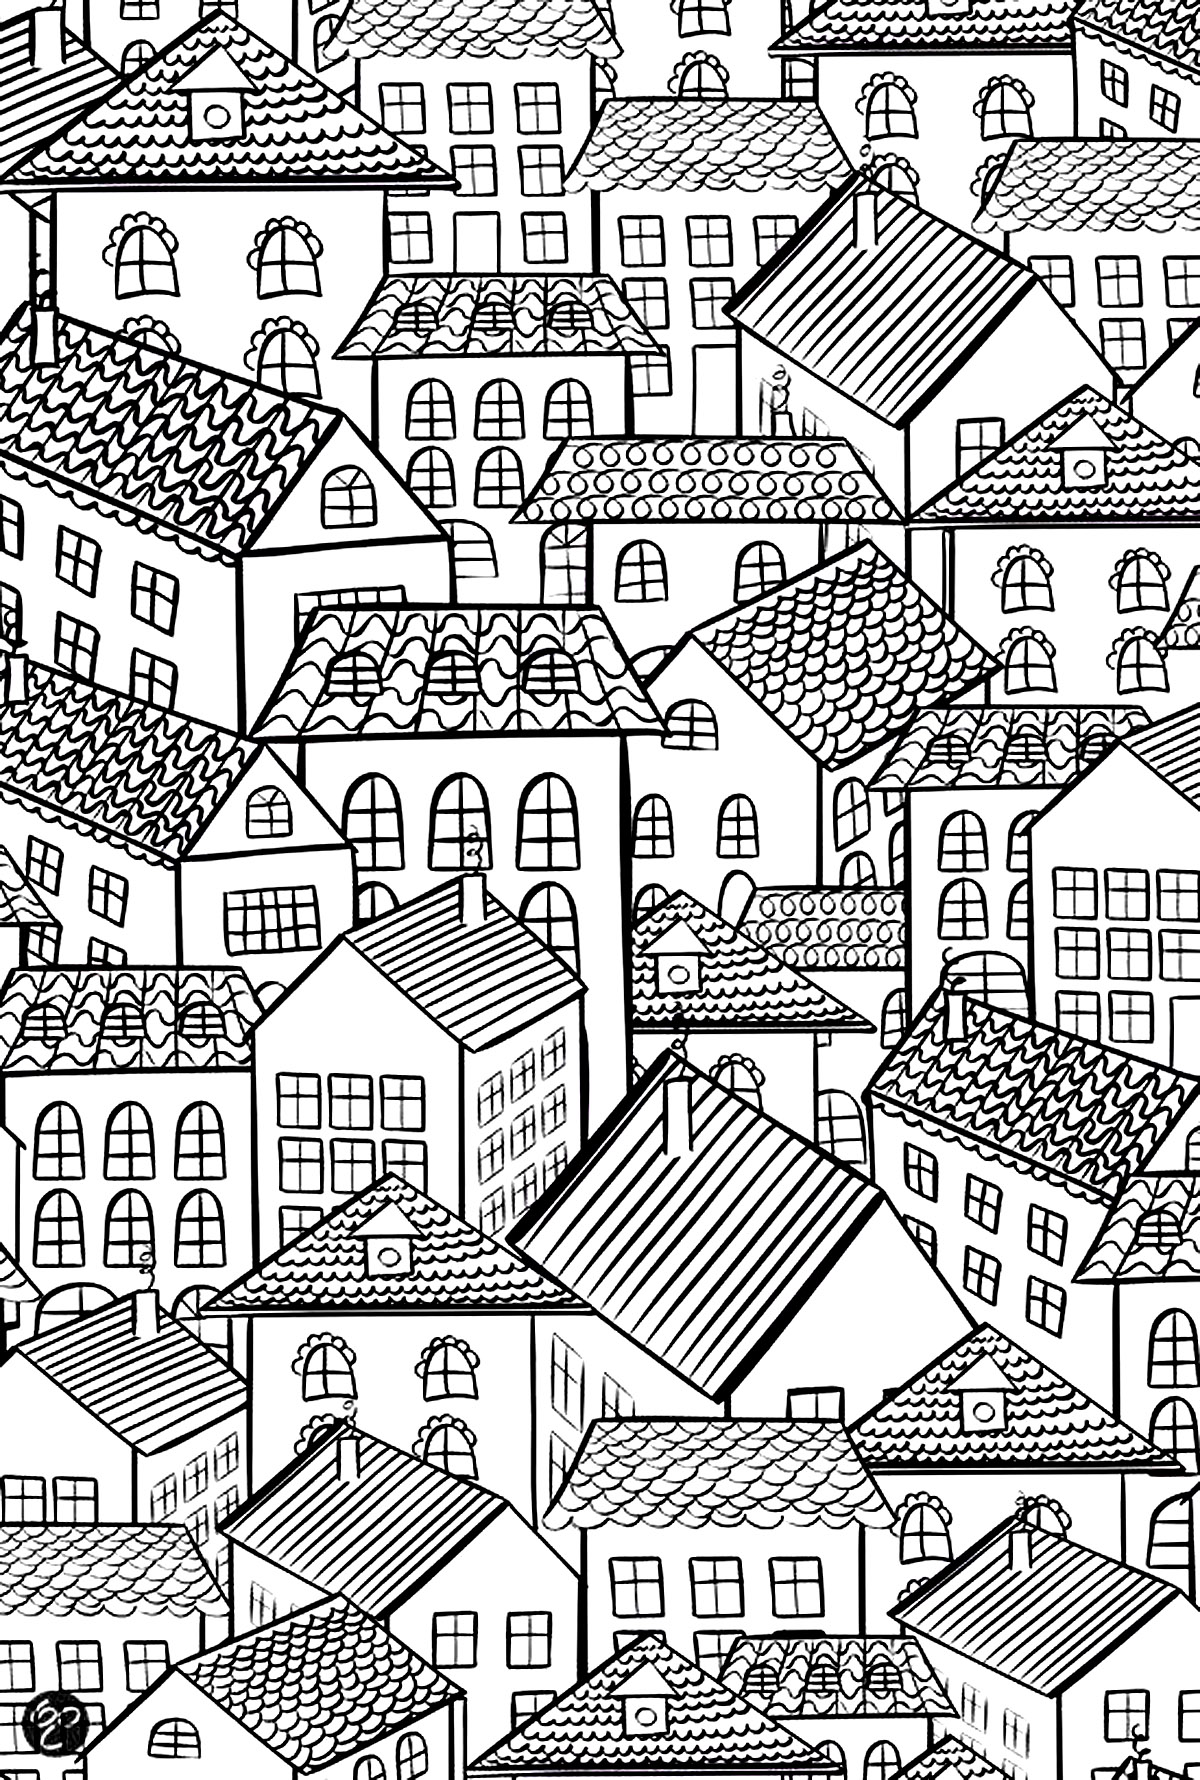 coloring worksheets house simple house coloring pages at getcoloringscom free house worksheets coloring